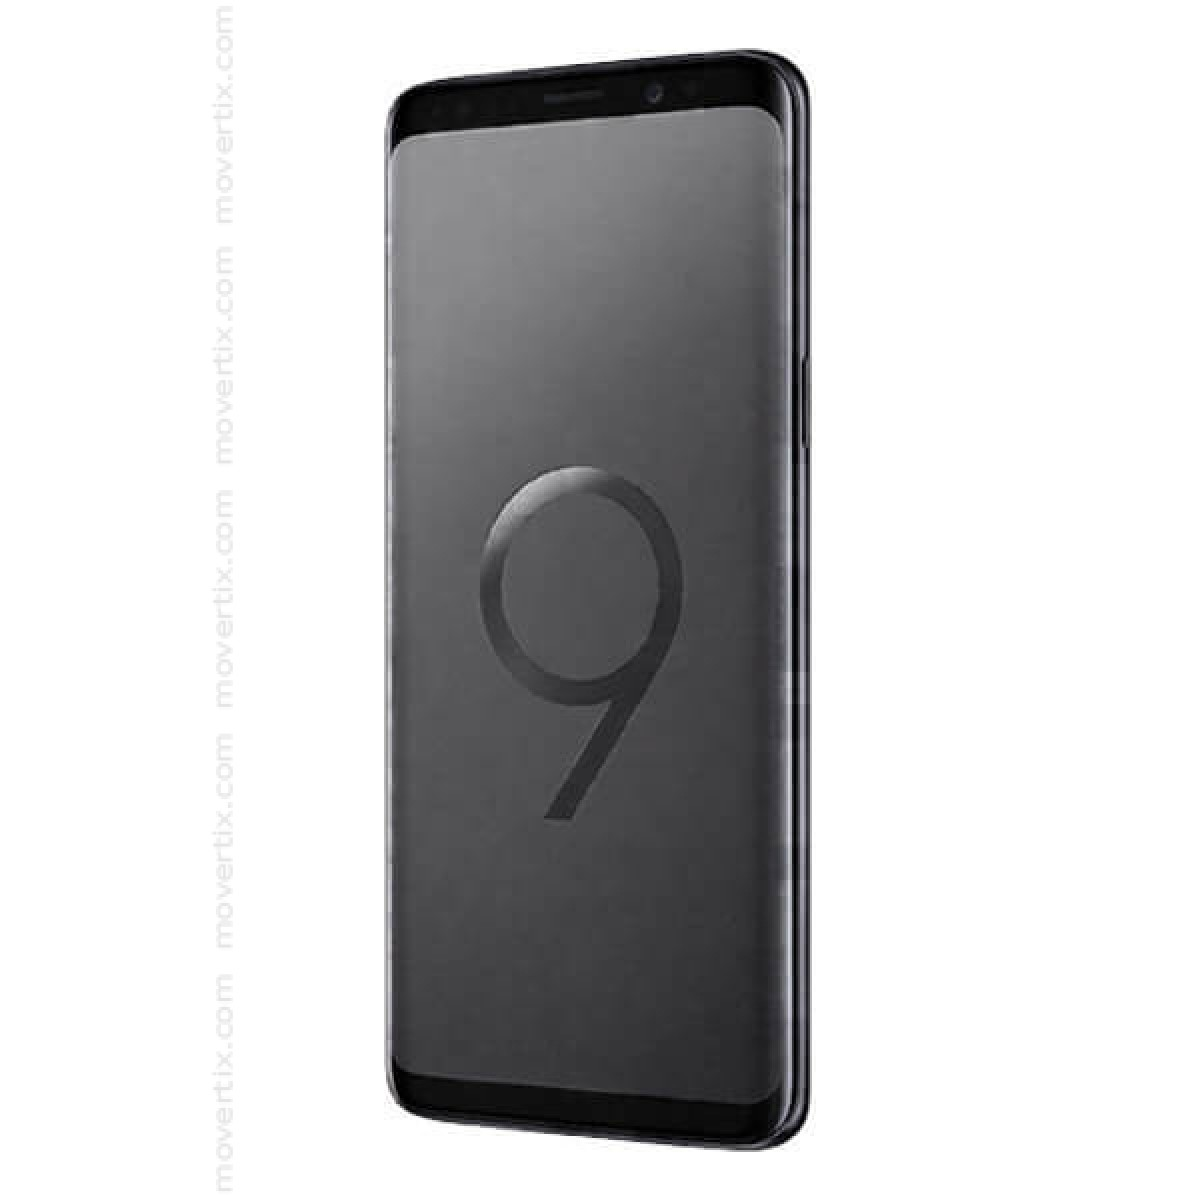 Samsung Galaxy S9 Dual SIM Midnight Black 64GB (SM-G960F/DS)